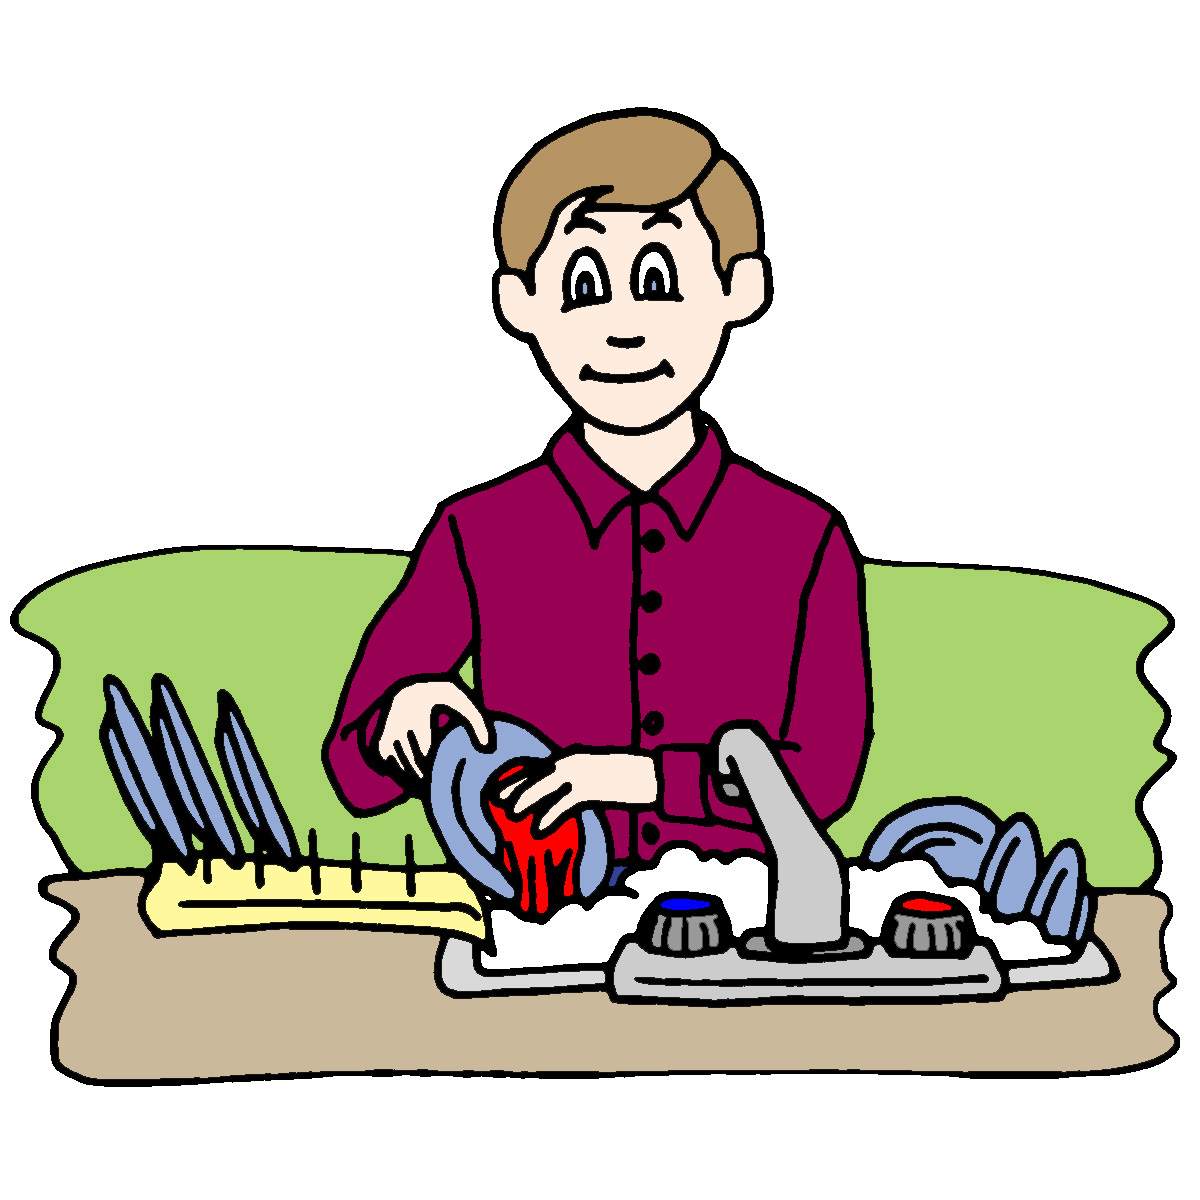 Kids doing chores clipart.